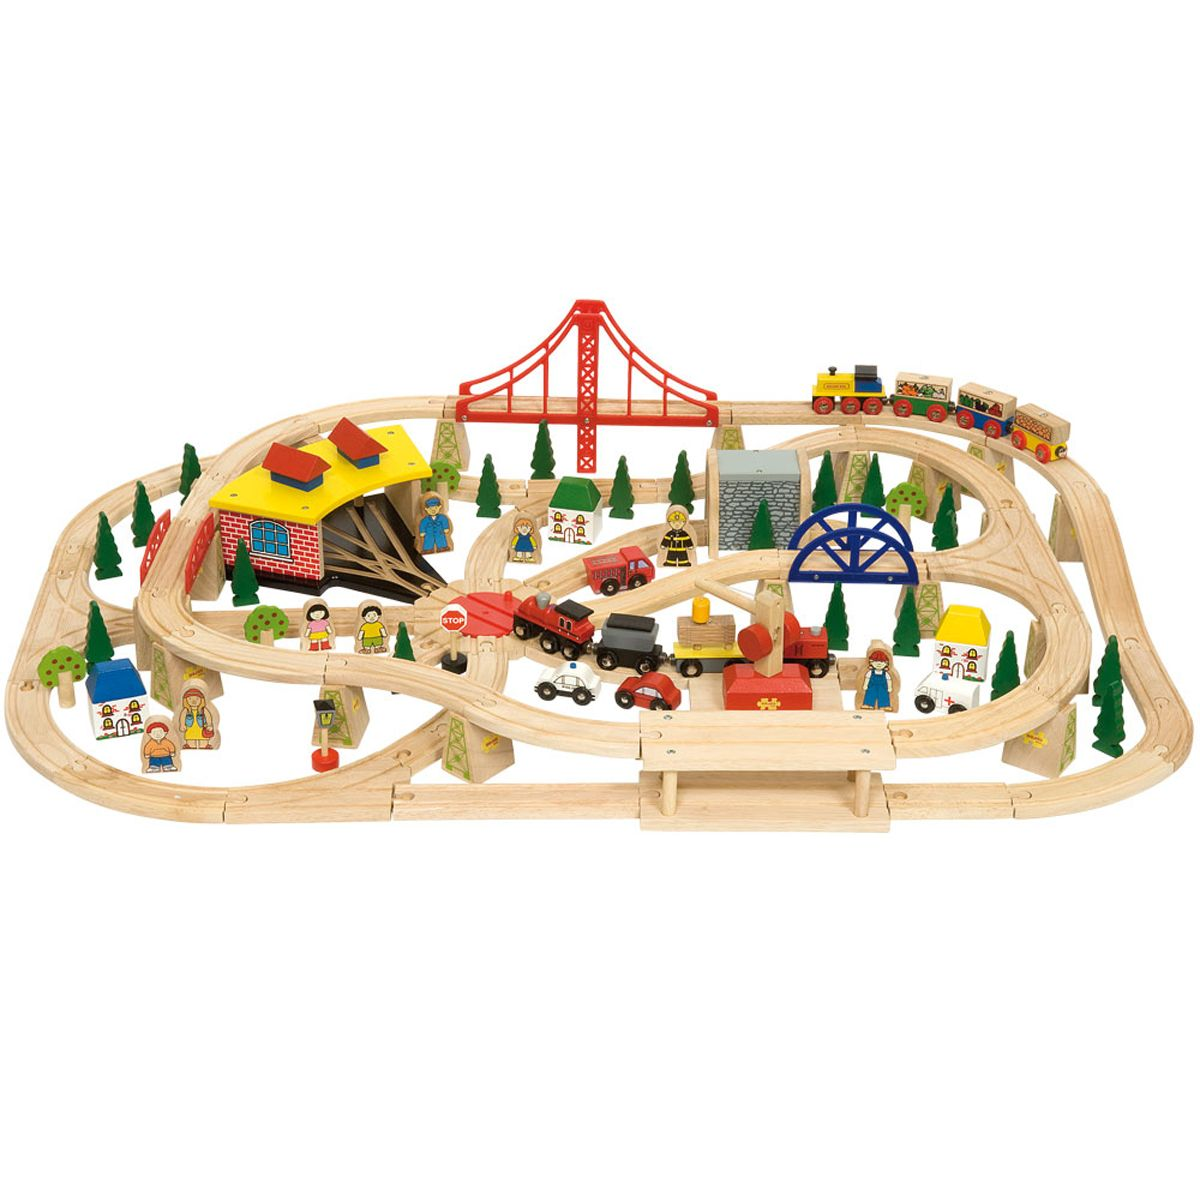 This Superb Freight Train Set Contains 130 Pieces So